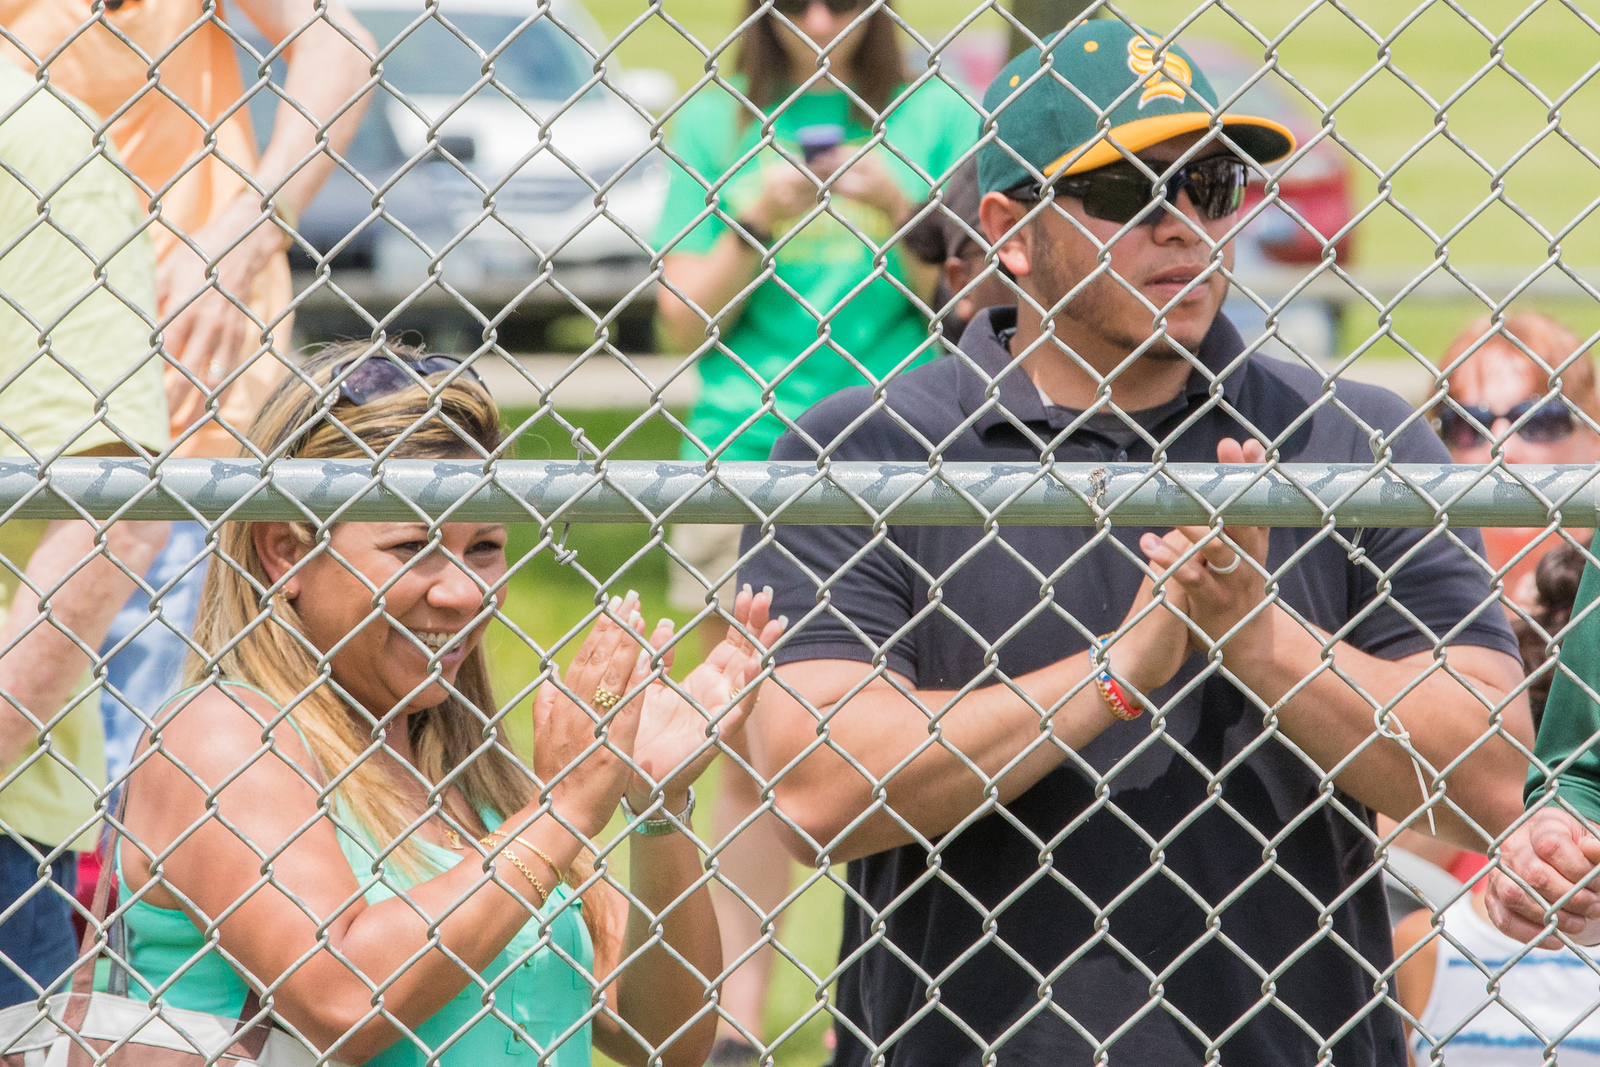 Mother, Scarlett Fuentes, and Uncle, Damil Fuentes, cheer on Crystal Lake South third baseman Brian Fuentes during the Class 4A sectional baseball tournament Saturday, Jun 3, 2017 at Peterson Park in McHenry. Crystal Lake South went on to win the Class 4A sectional championship game 6-2. KKoontz – For Shaw Media